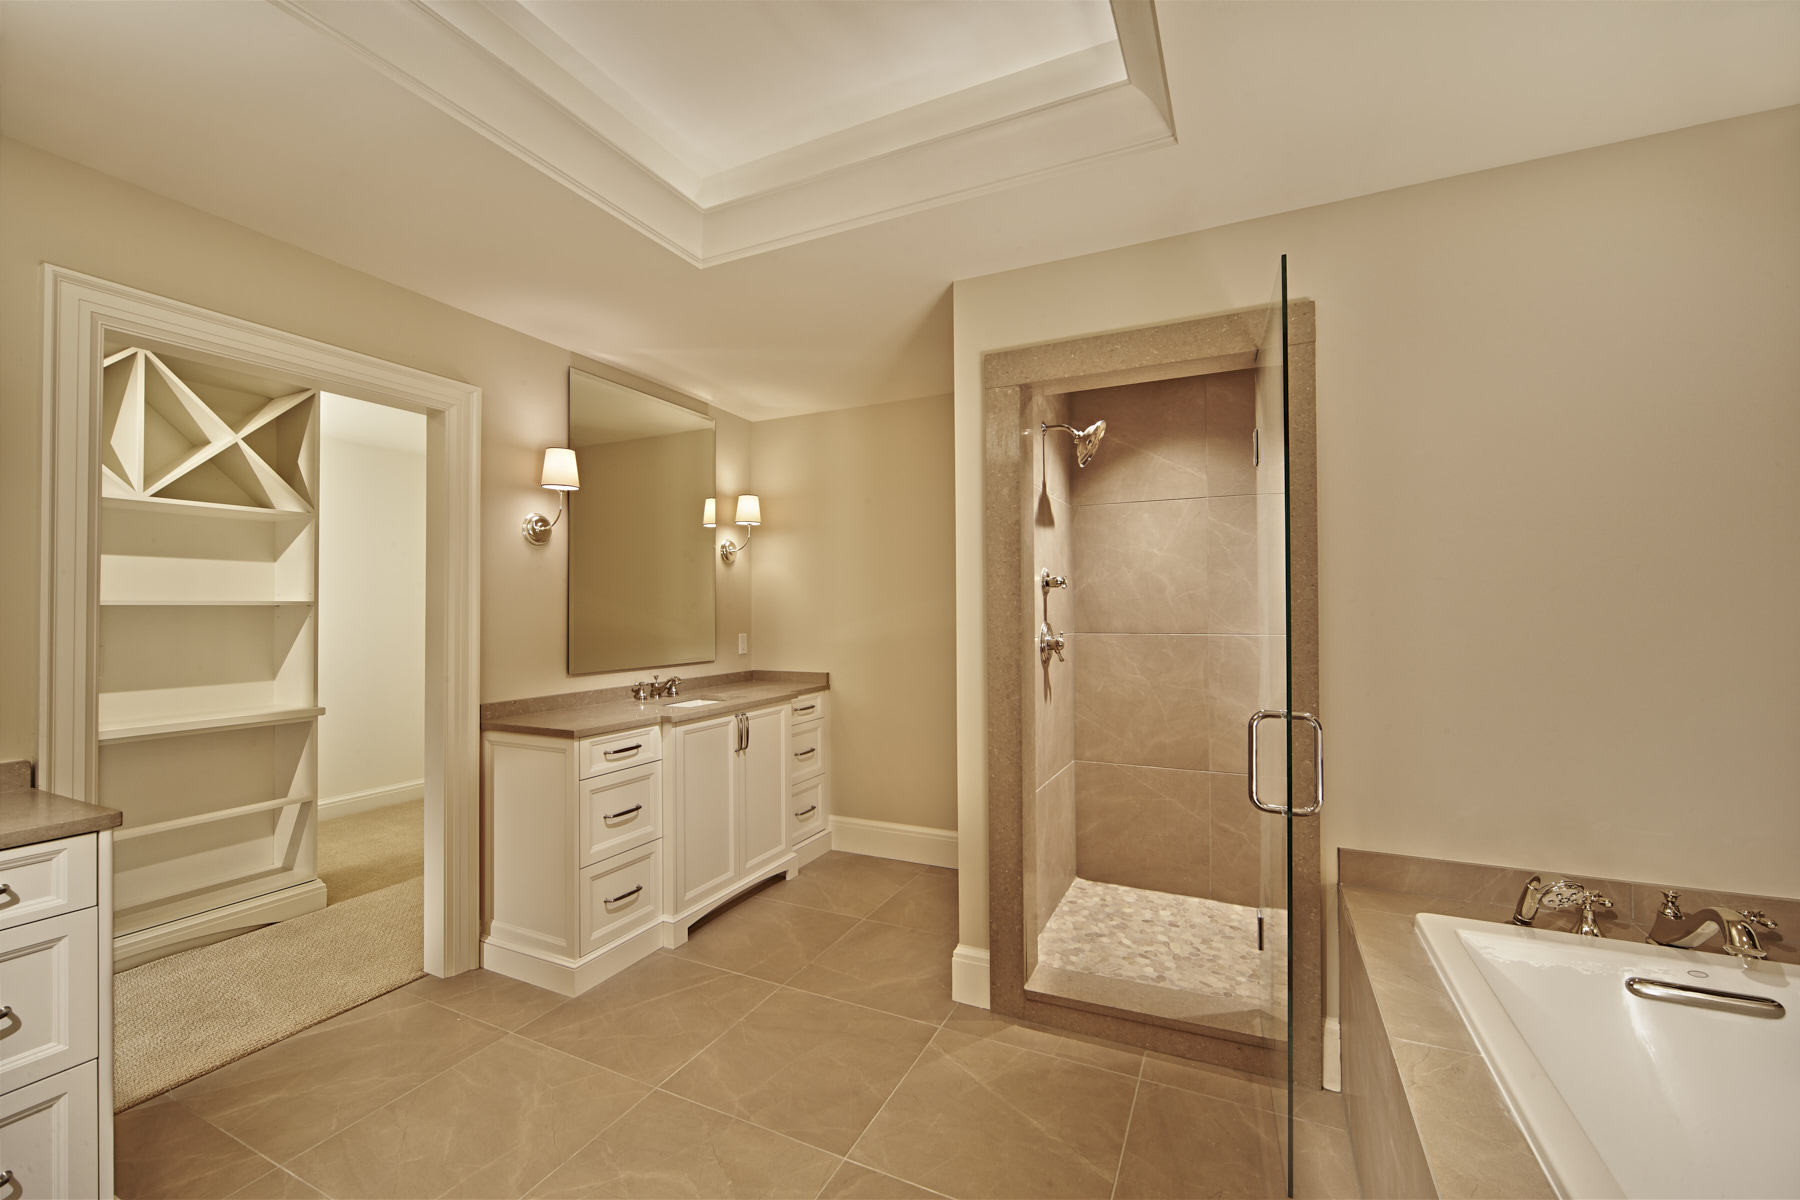 Exterior-NEW-Master Bathroom - 1187 Westboro3271-Final.jpg